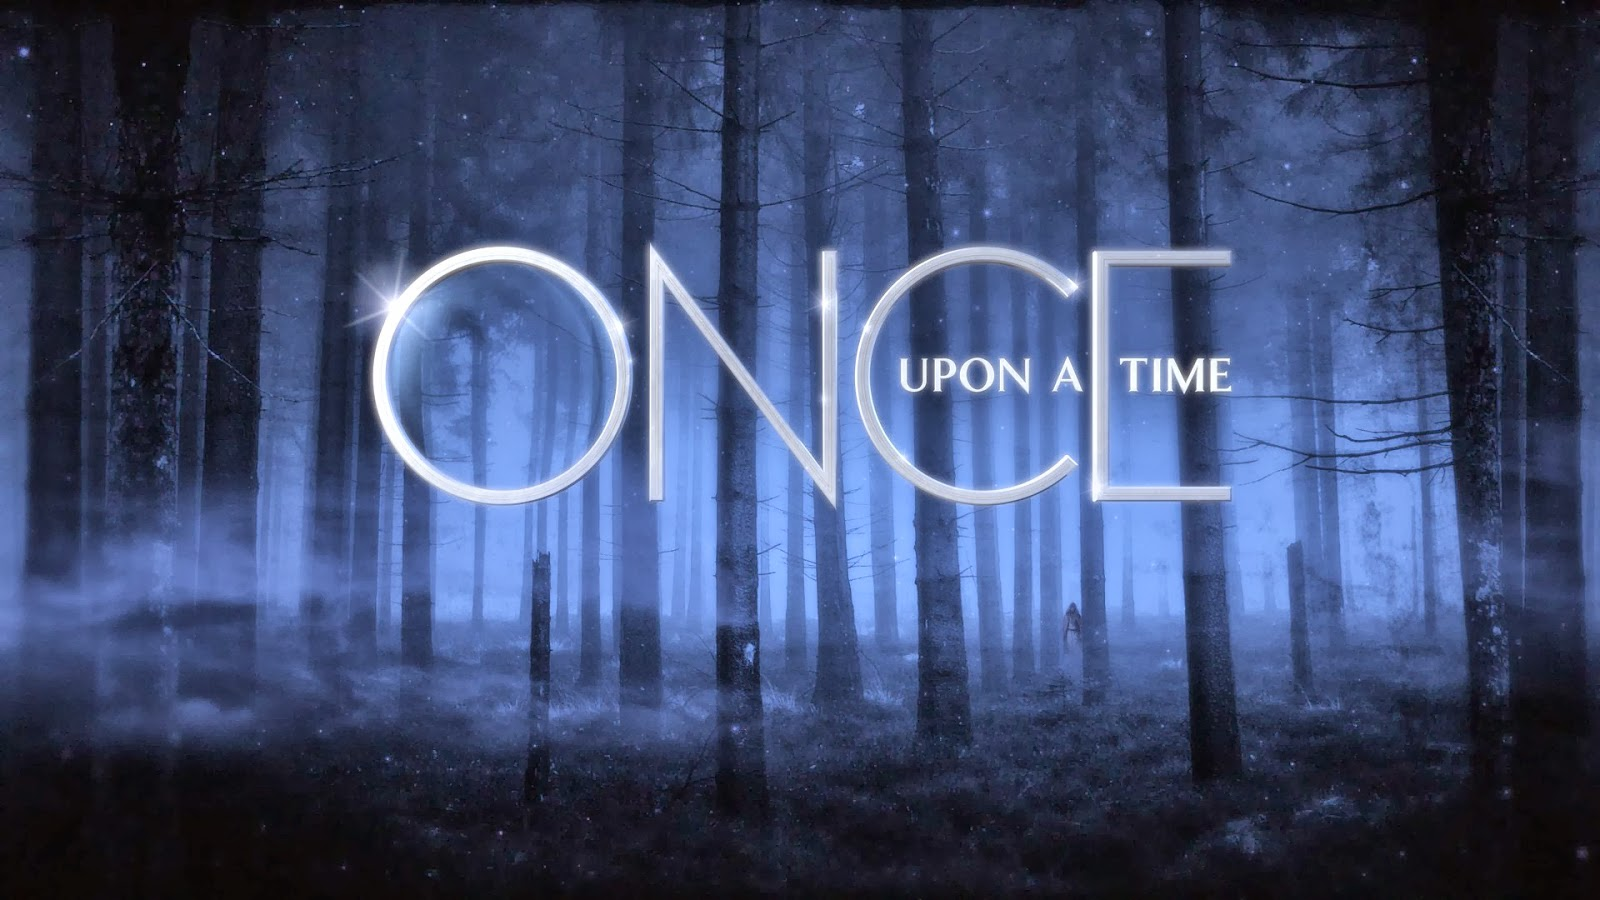 Once Upon A Time - Episode 4.06 - Family Business - Official Synopsis